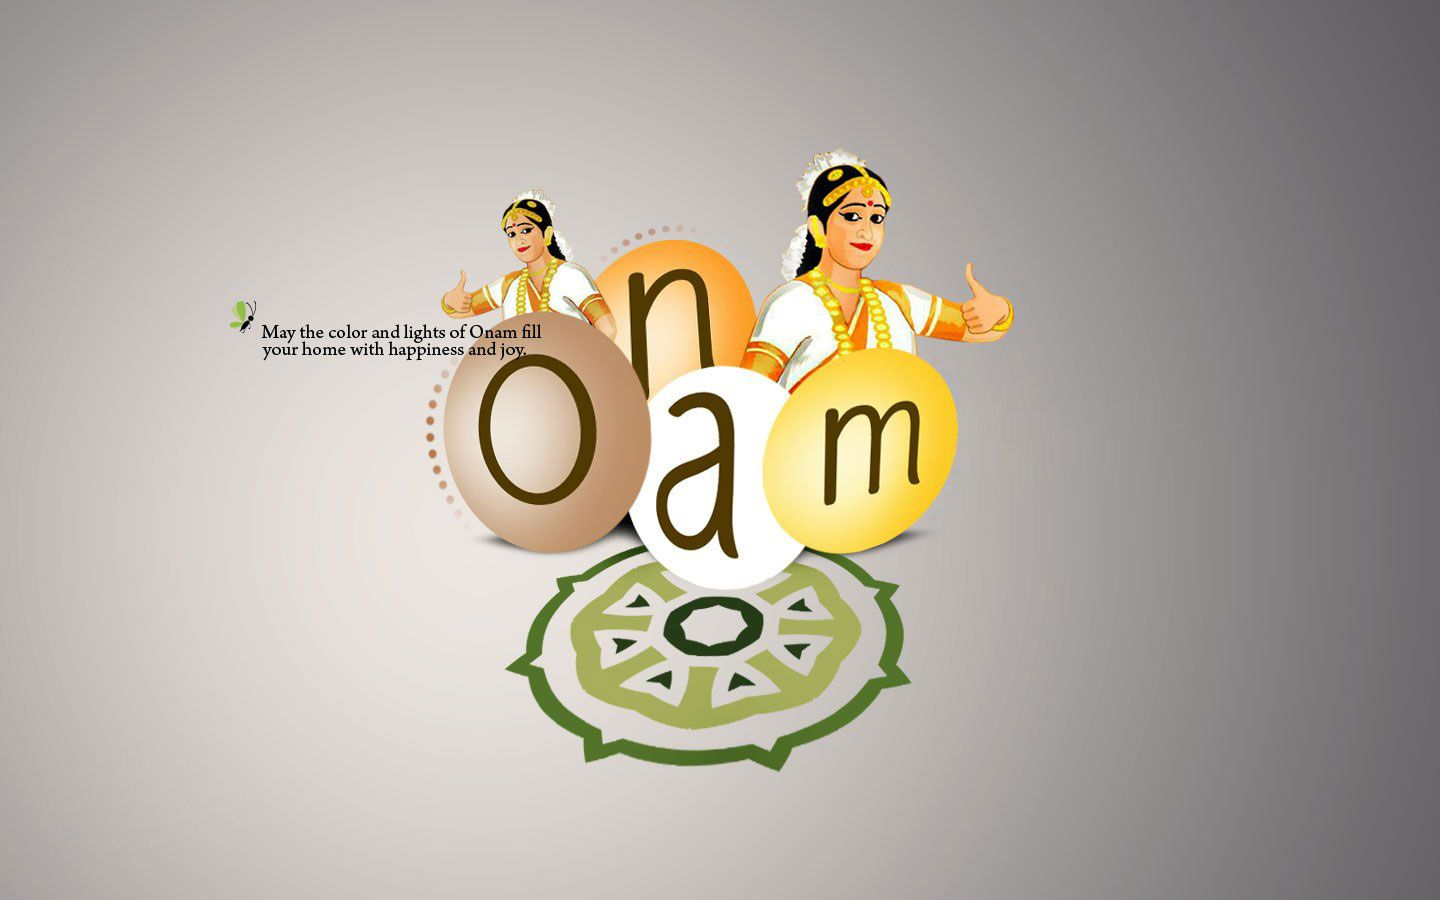 Onam 2014 wishes greetings images onam wishes quotes and explore onam greetings greetings images and more kristyandbryce Image collections